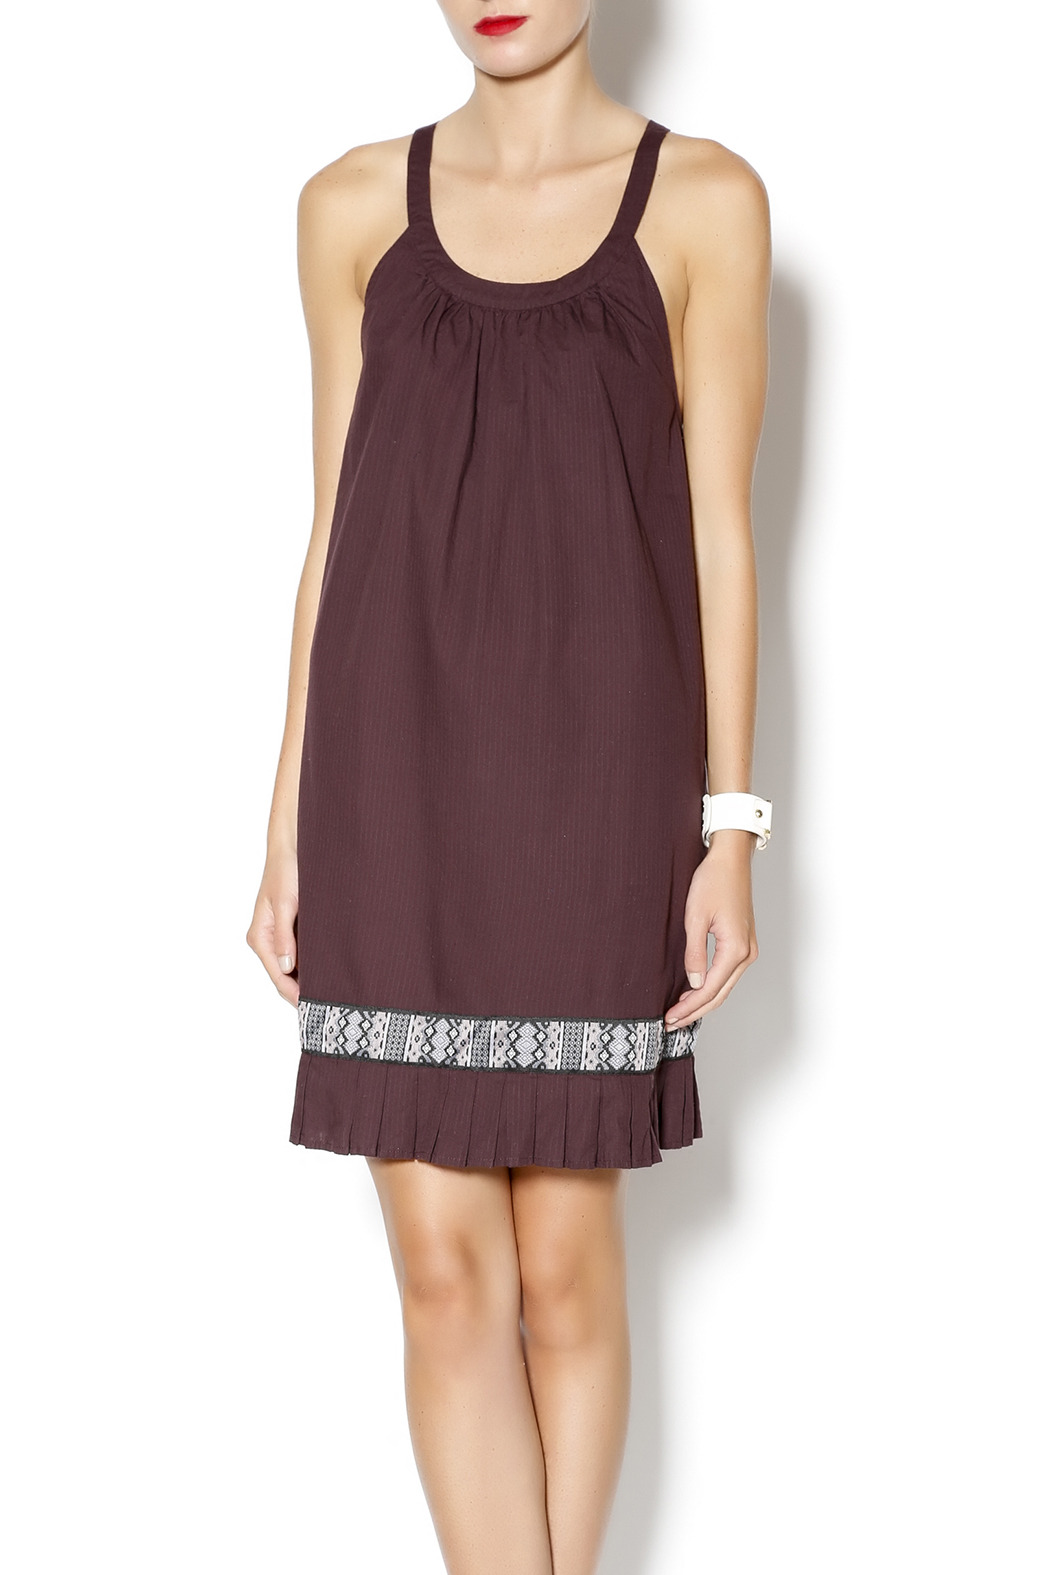 Free People Native Sun Shift Dress - Front Cropped Image